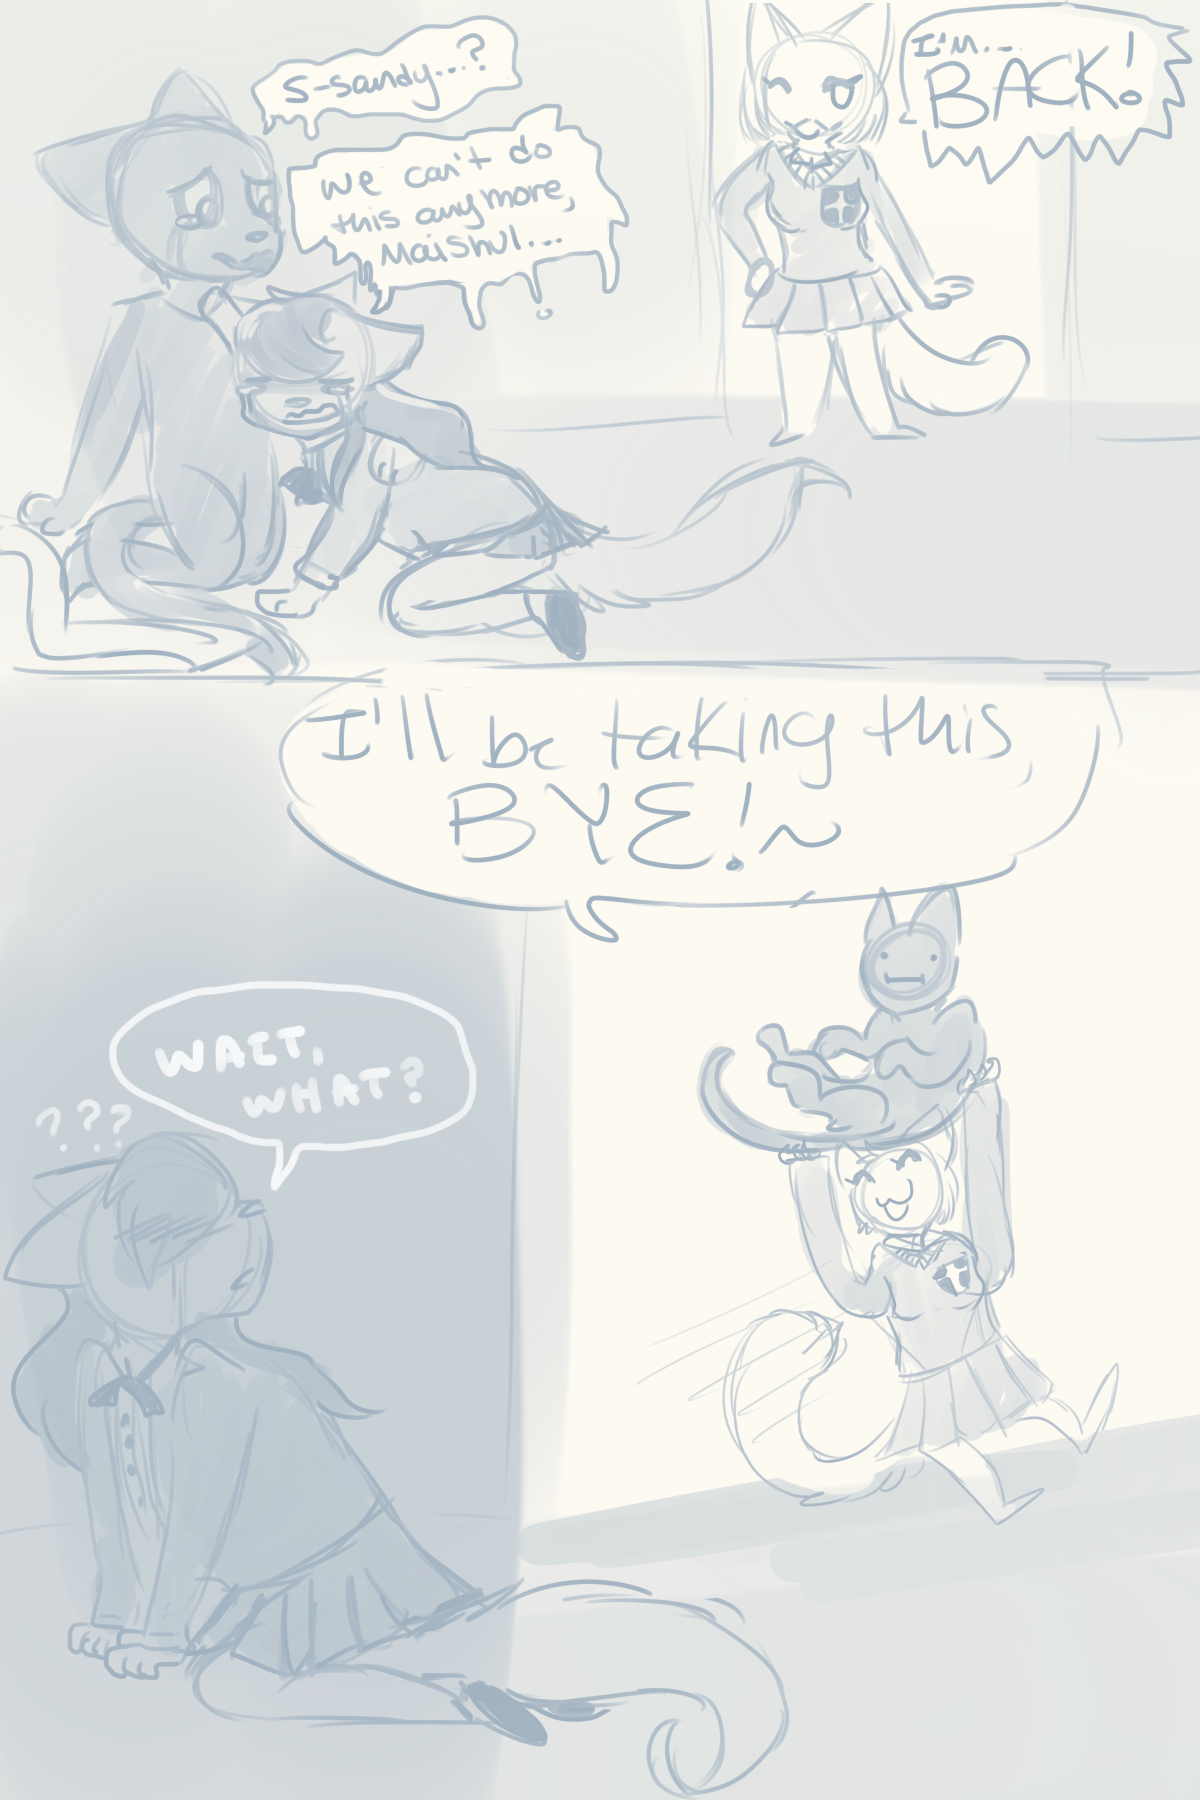 Candybooru image #11476, tagged with Lucy Mike MikexLucy Sandy Swiftily_(Artist) comic sketch